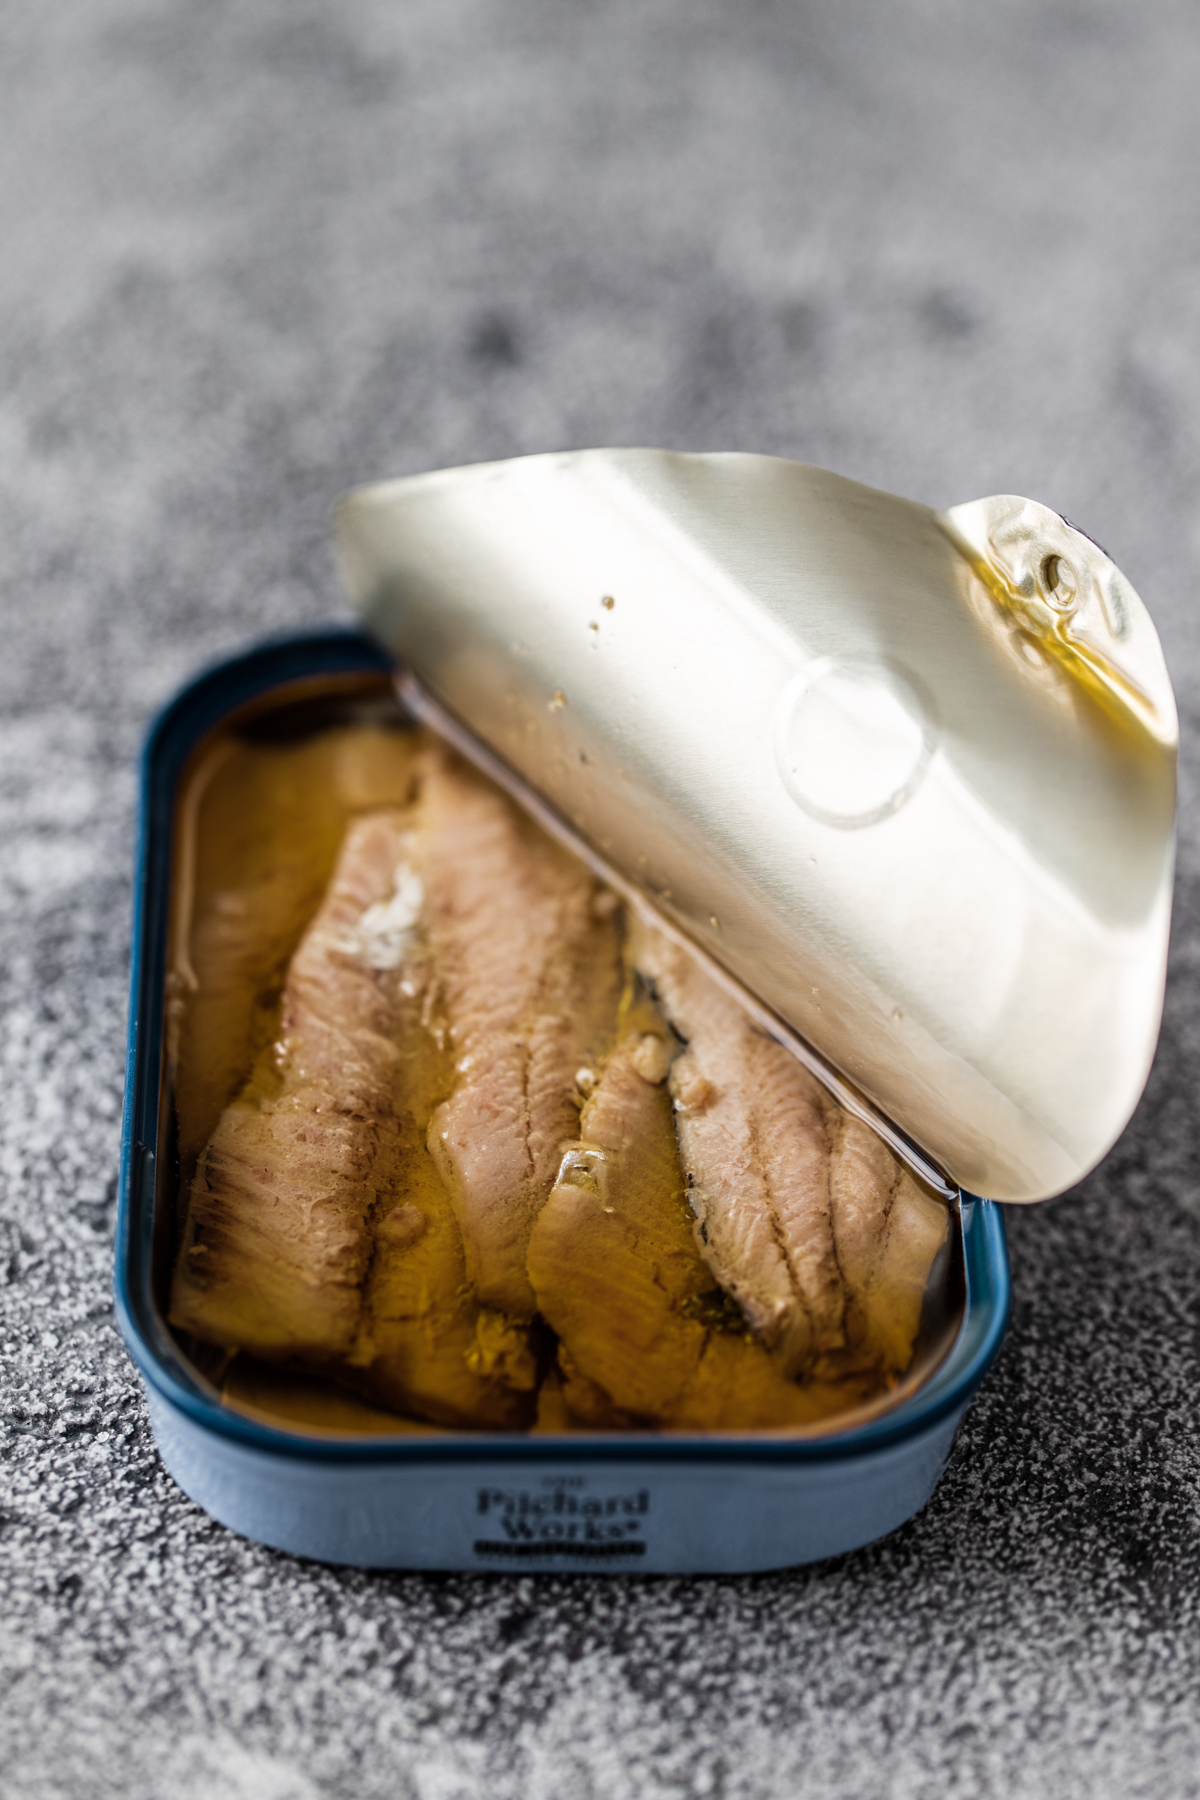 Sardine fillets in a blue tin with the lid half peeled back on a grey black background